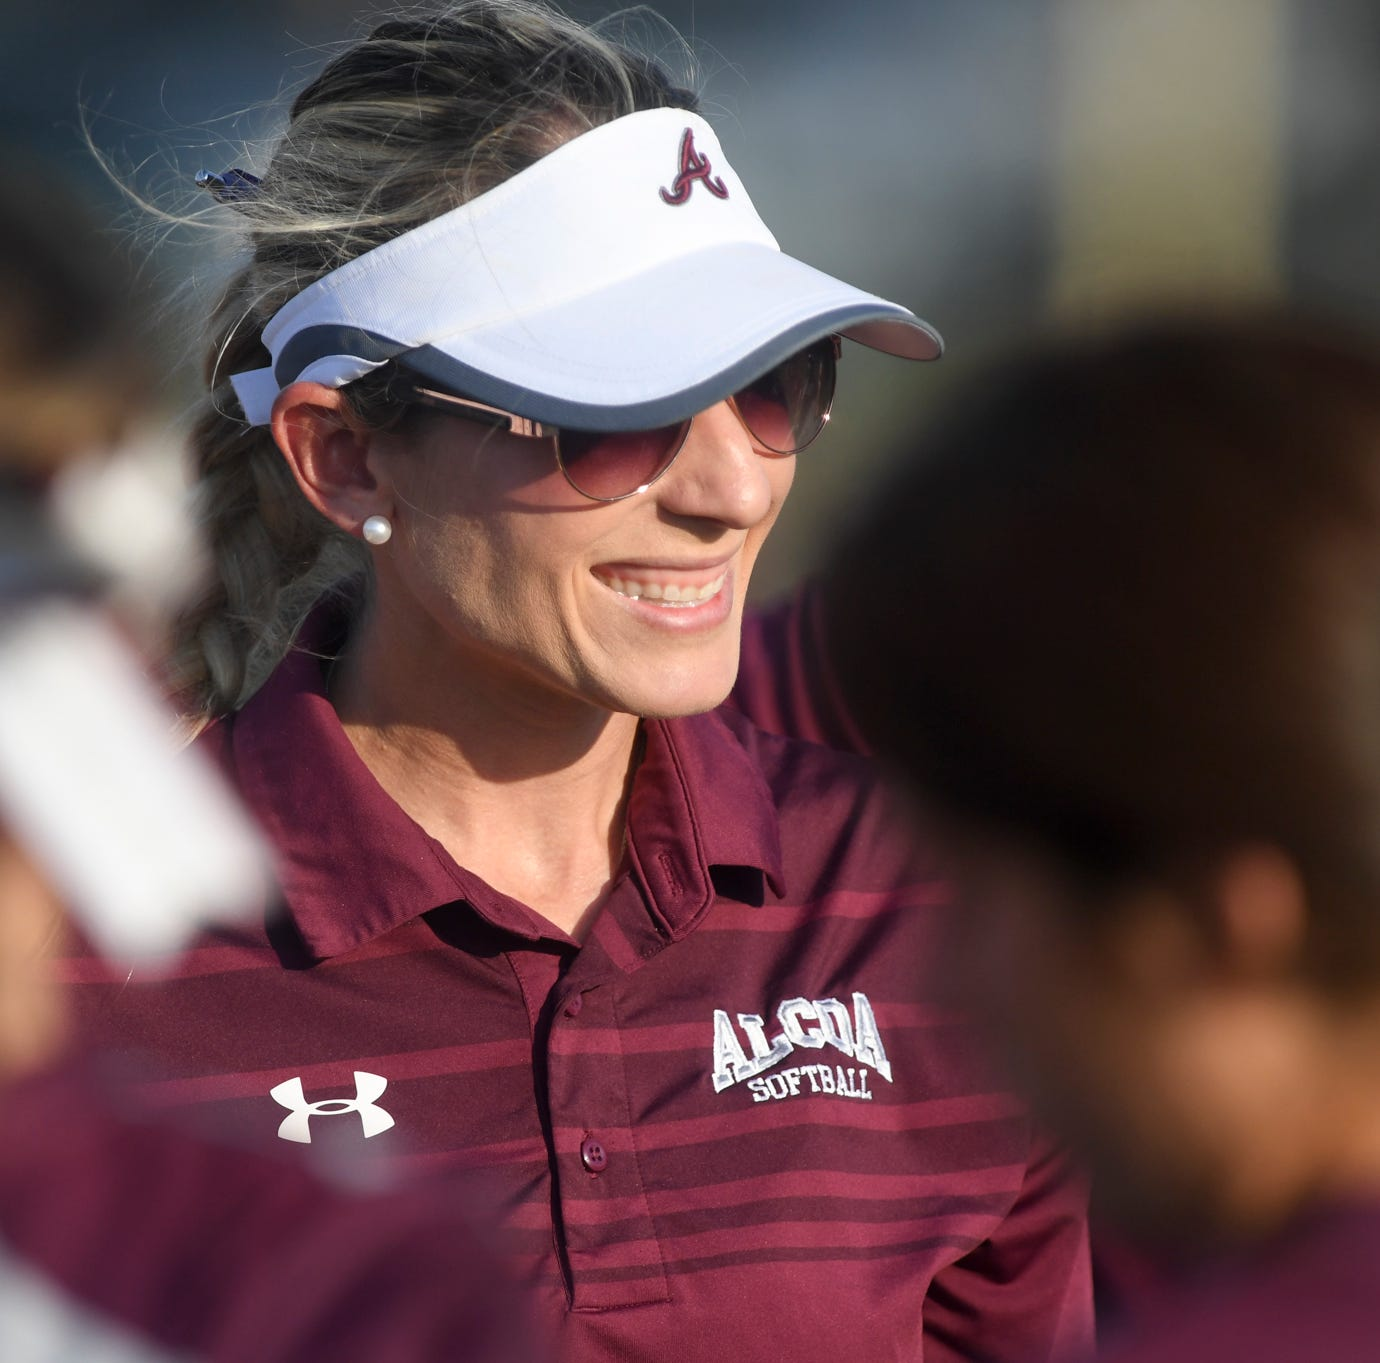 Former Lady Vols All-American makes TSSAA Spring Fling in first year as Alcoa softball coach